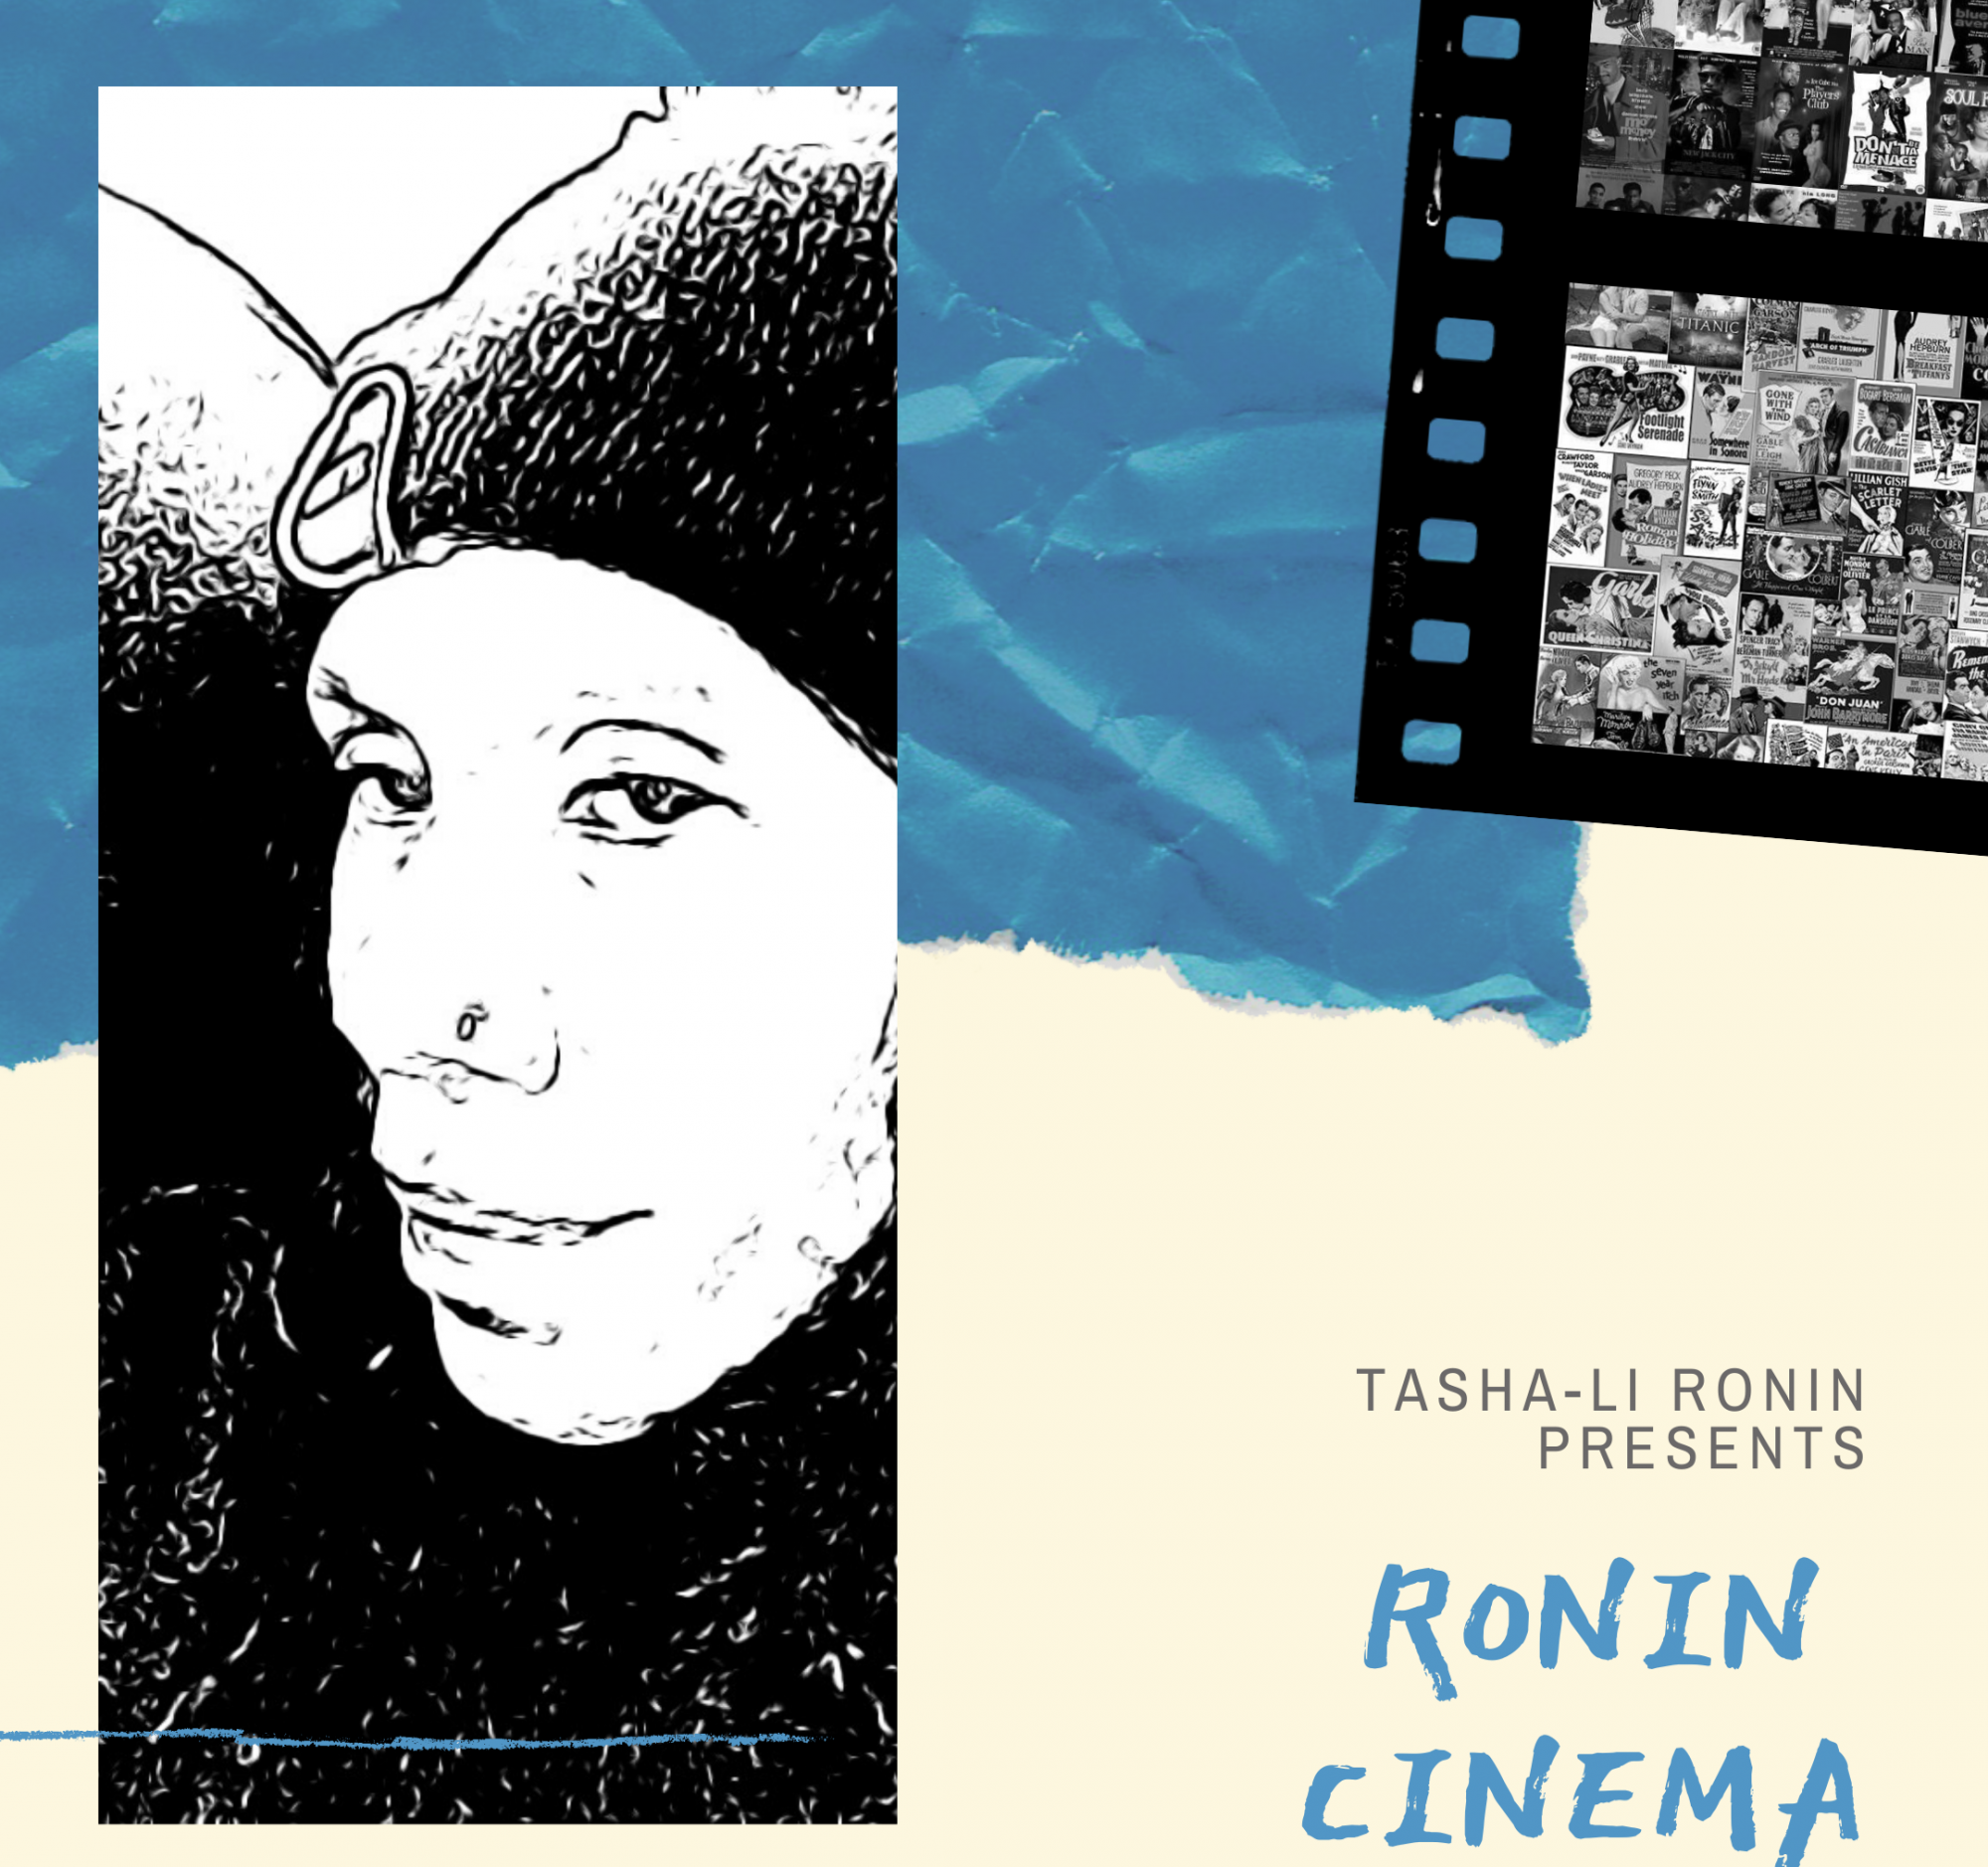 Ronin Cinema